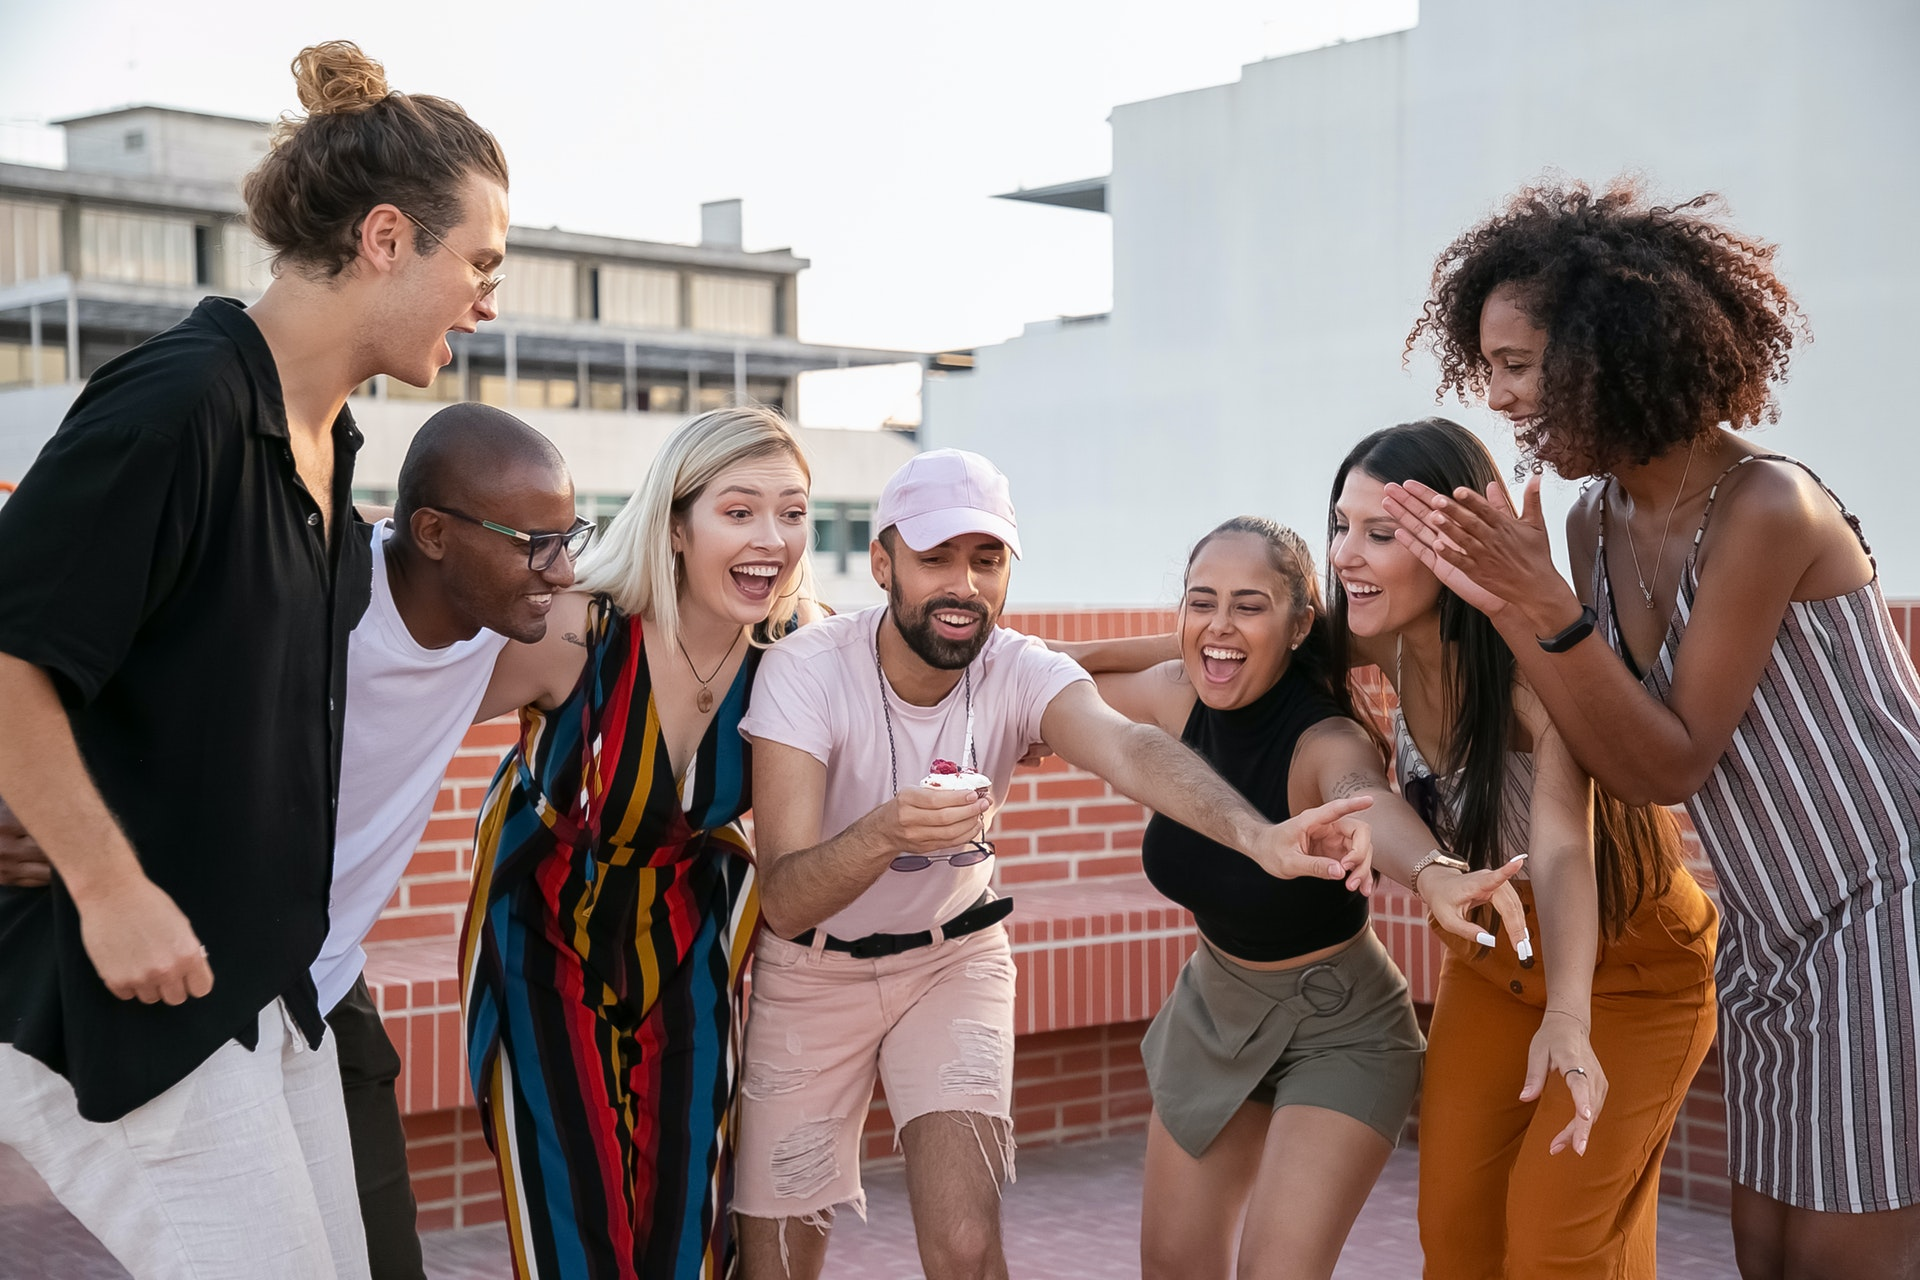 A group of friends standing on a roof top all gathered around anticipating doing something exciting